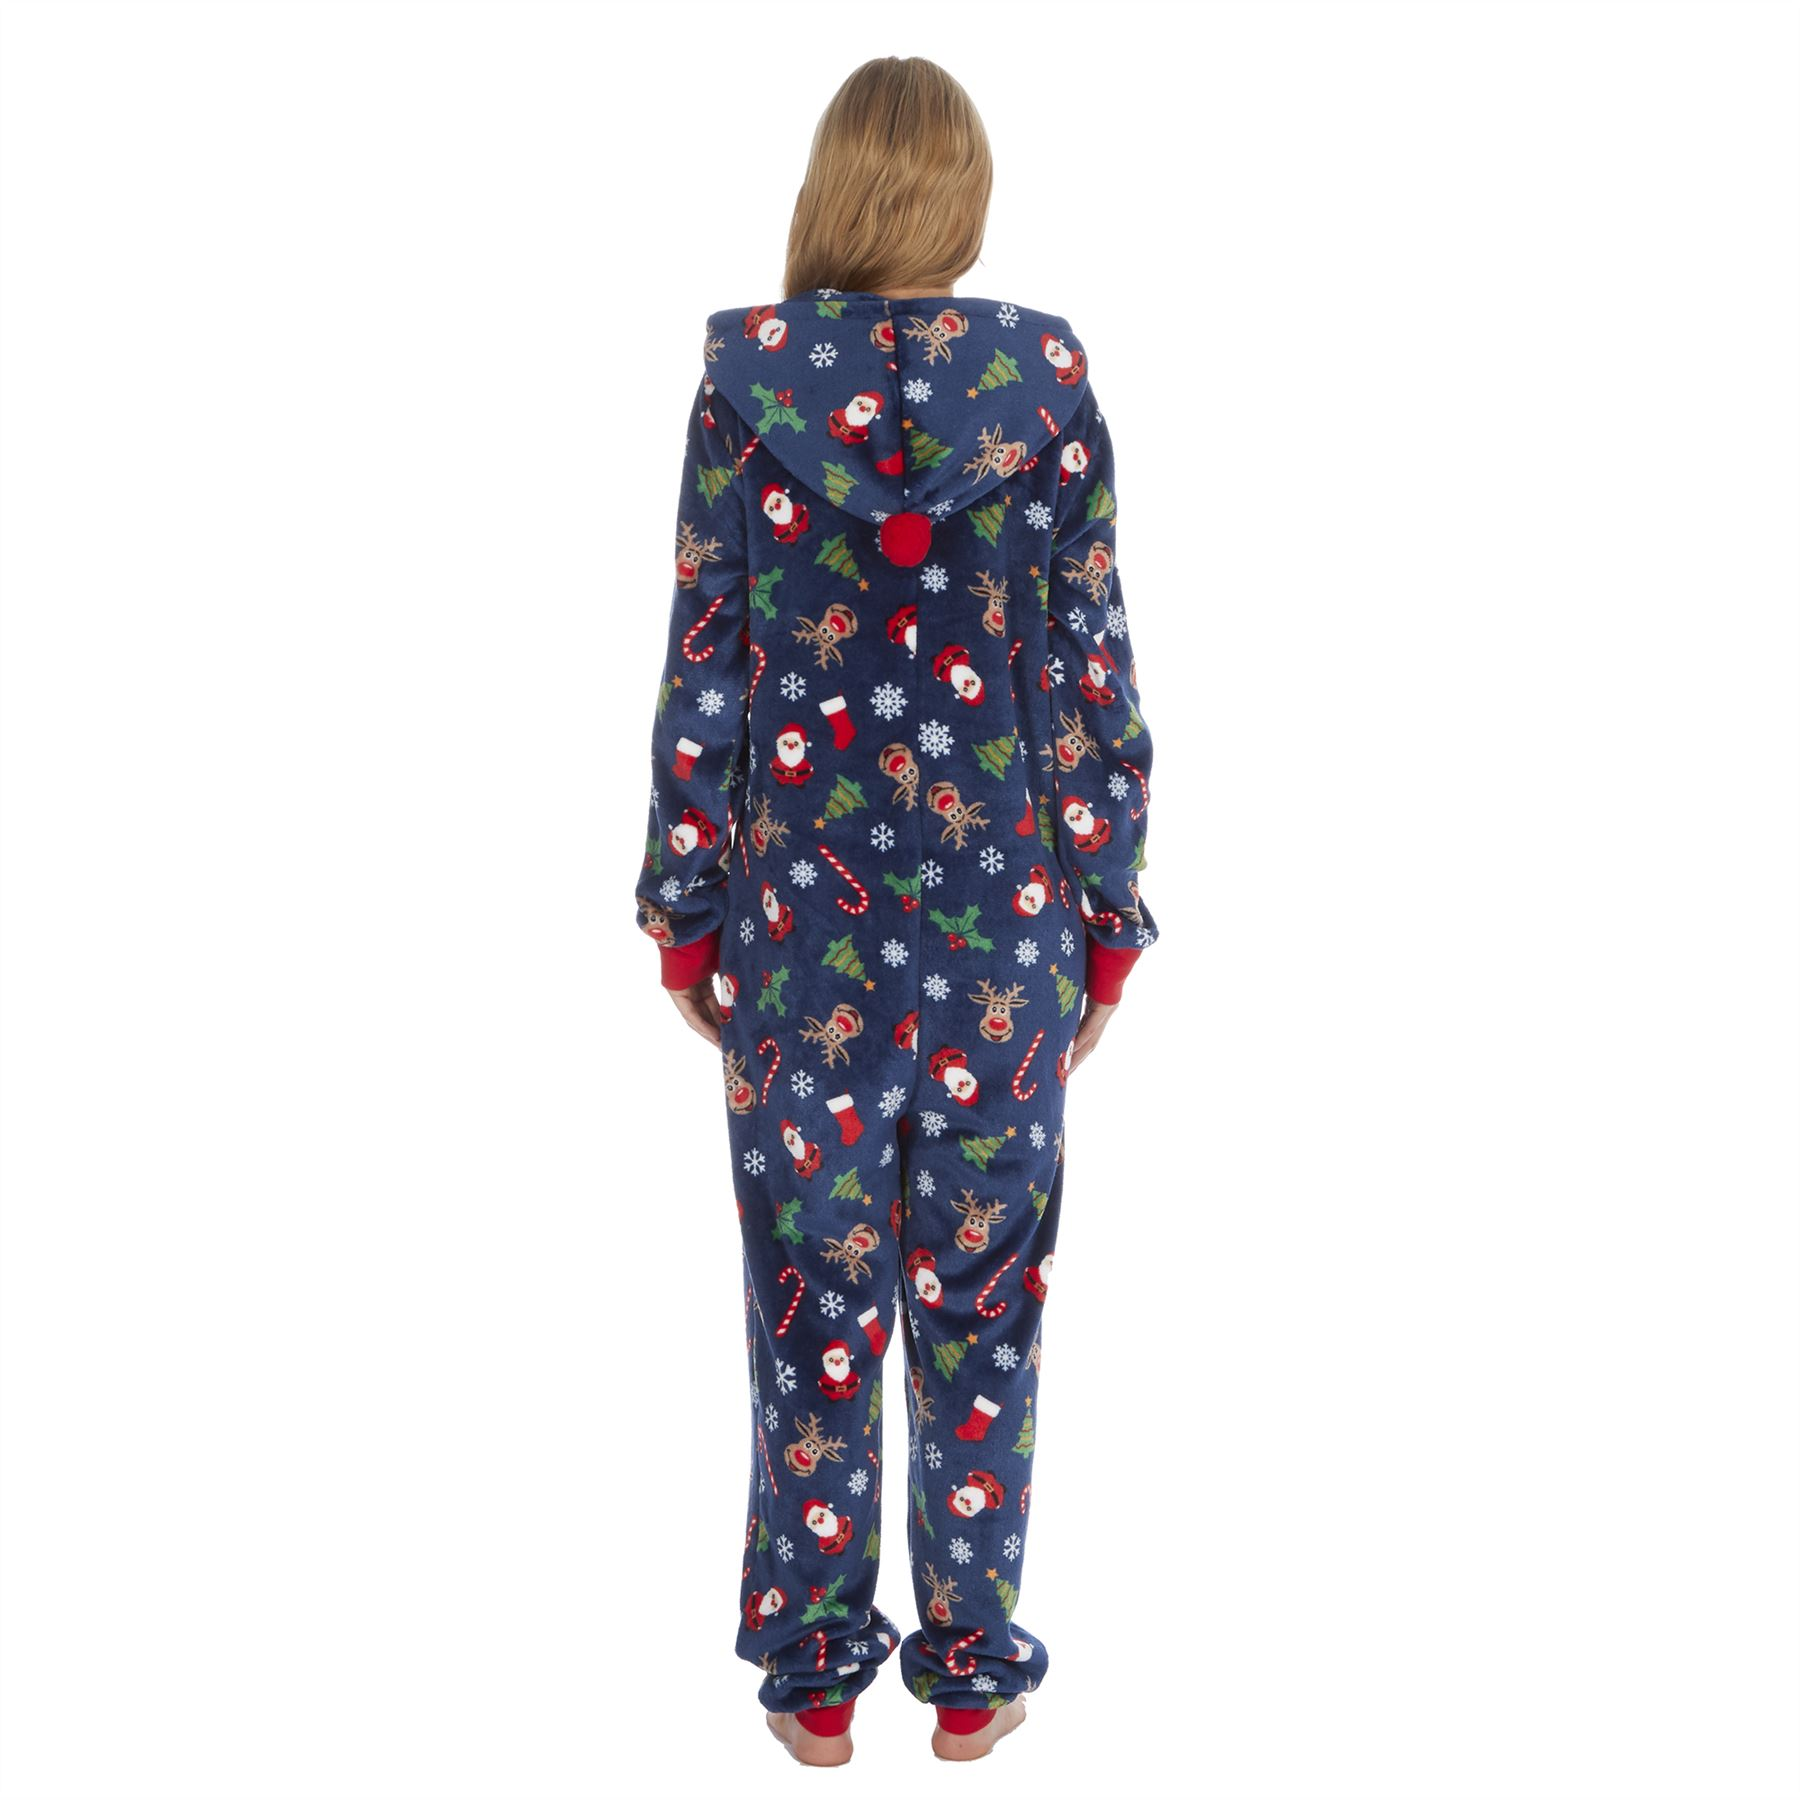 Ladies-Womens-Girls-Fleece-All-In-One-Pyjamas-Outfit-Jumpsuit-Costume-Size-6-18 thumbnail 50